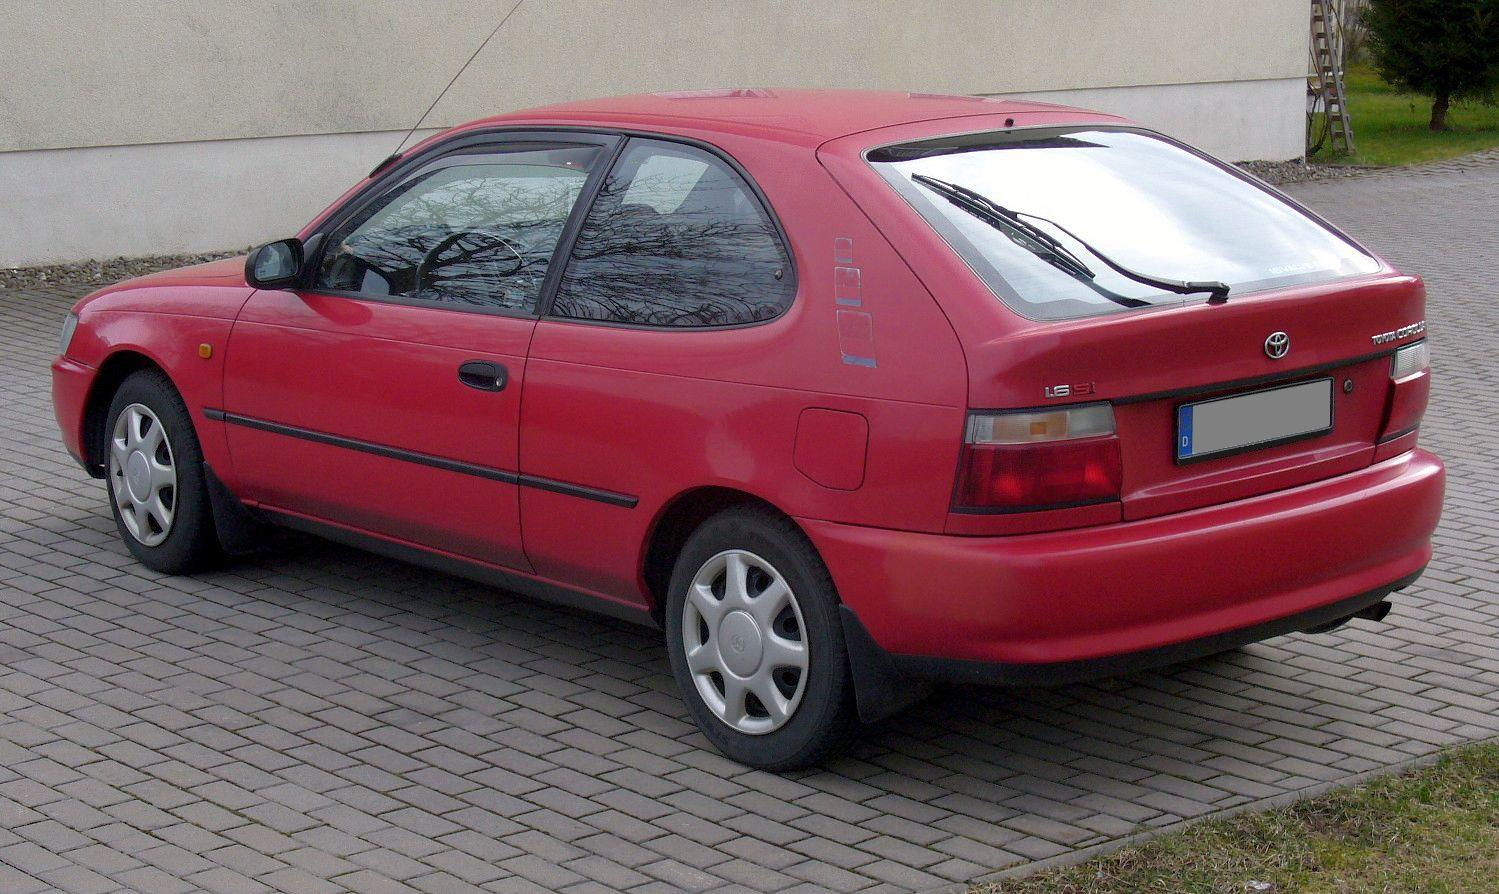 1996 Toyota Corolla Compact E10 Pictures Information